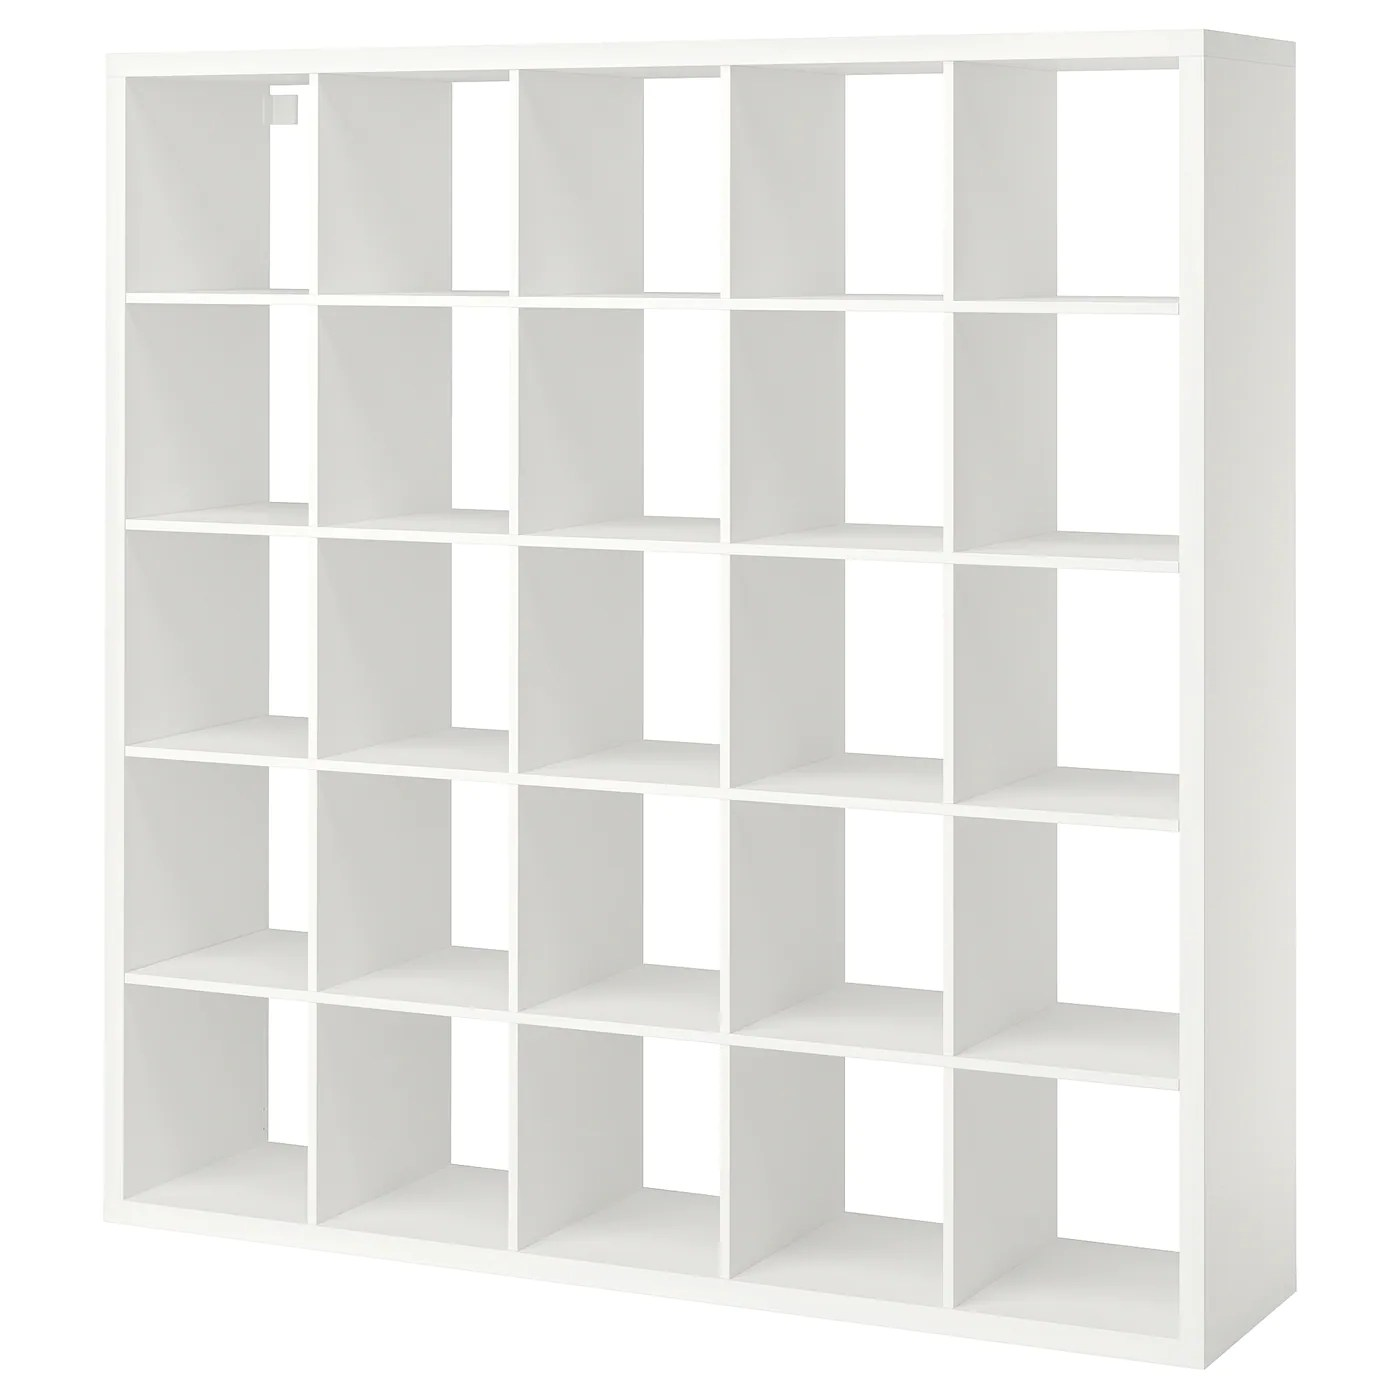 Ikea Kallax Kallax Shelving Unit White